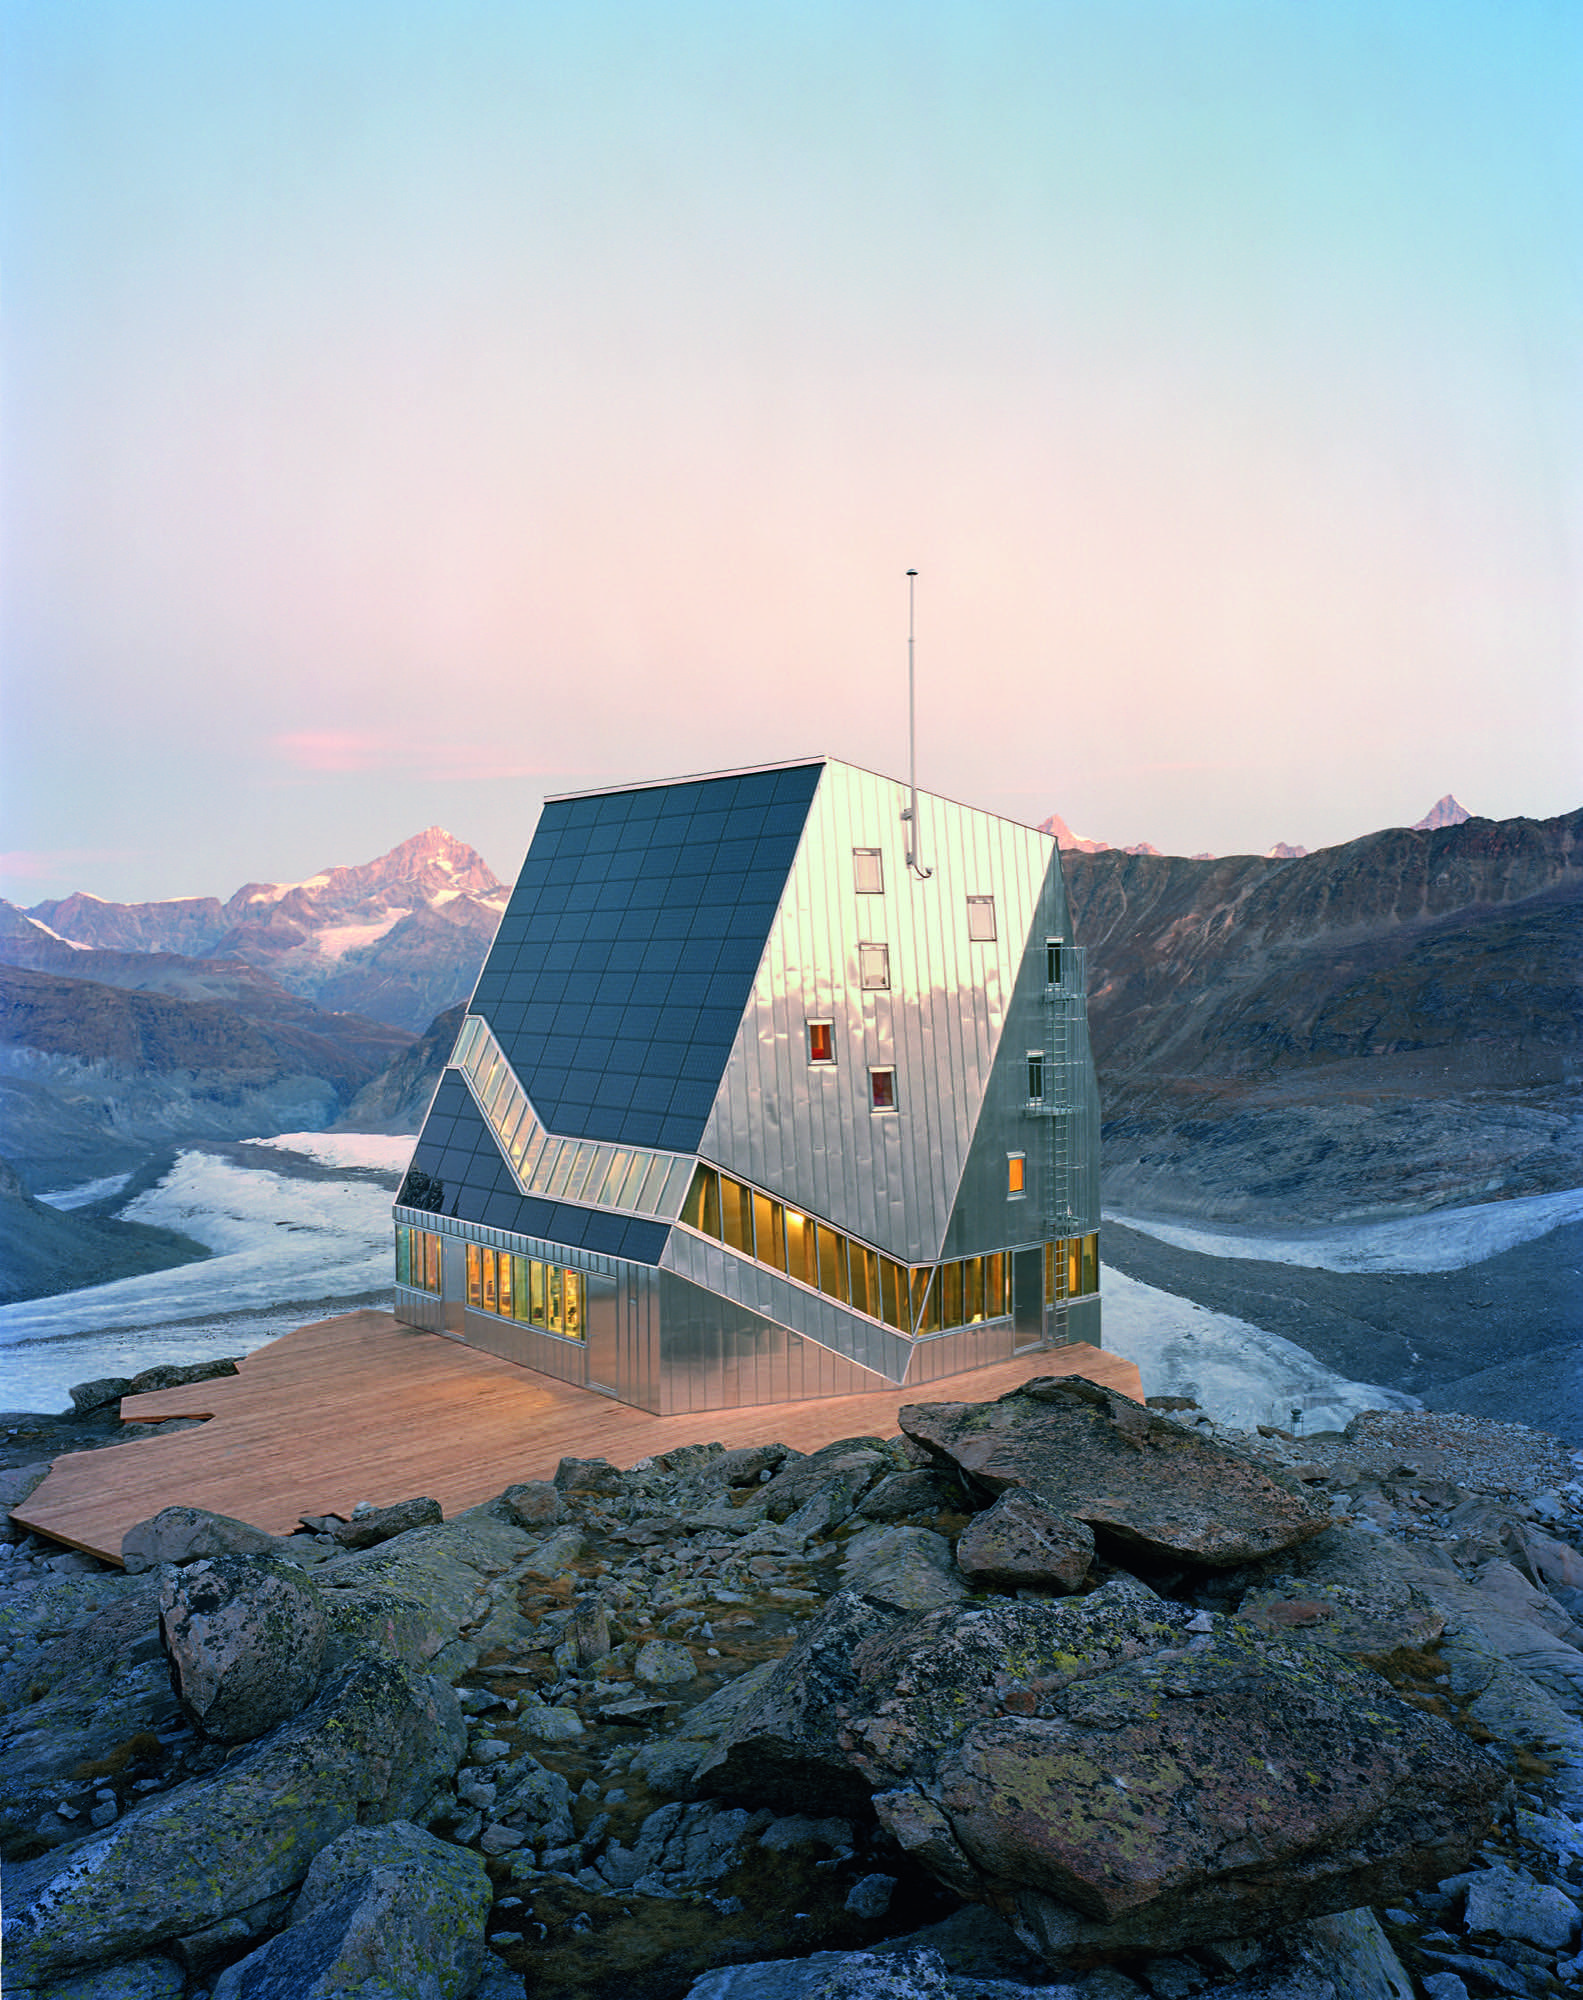 Monte Rosa Hut, Switzerland